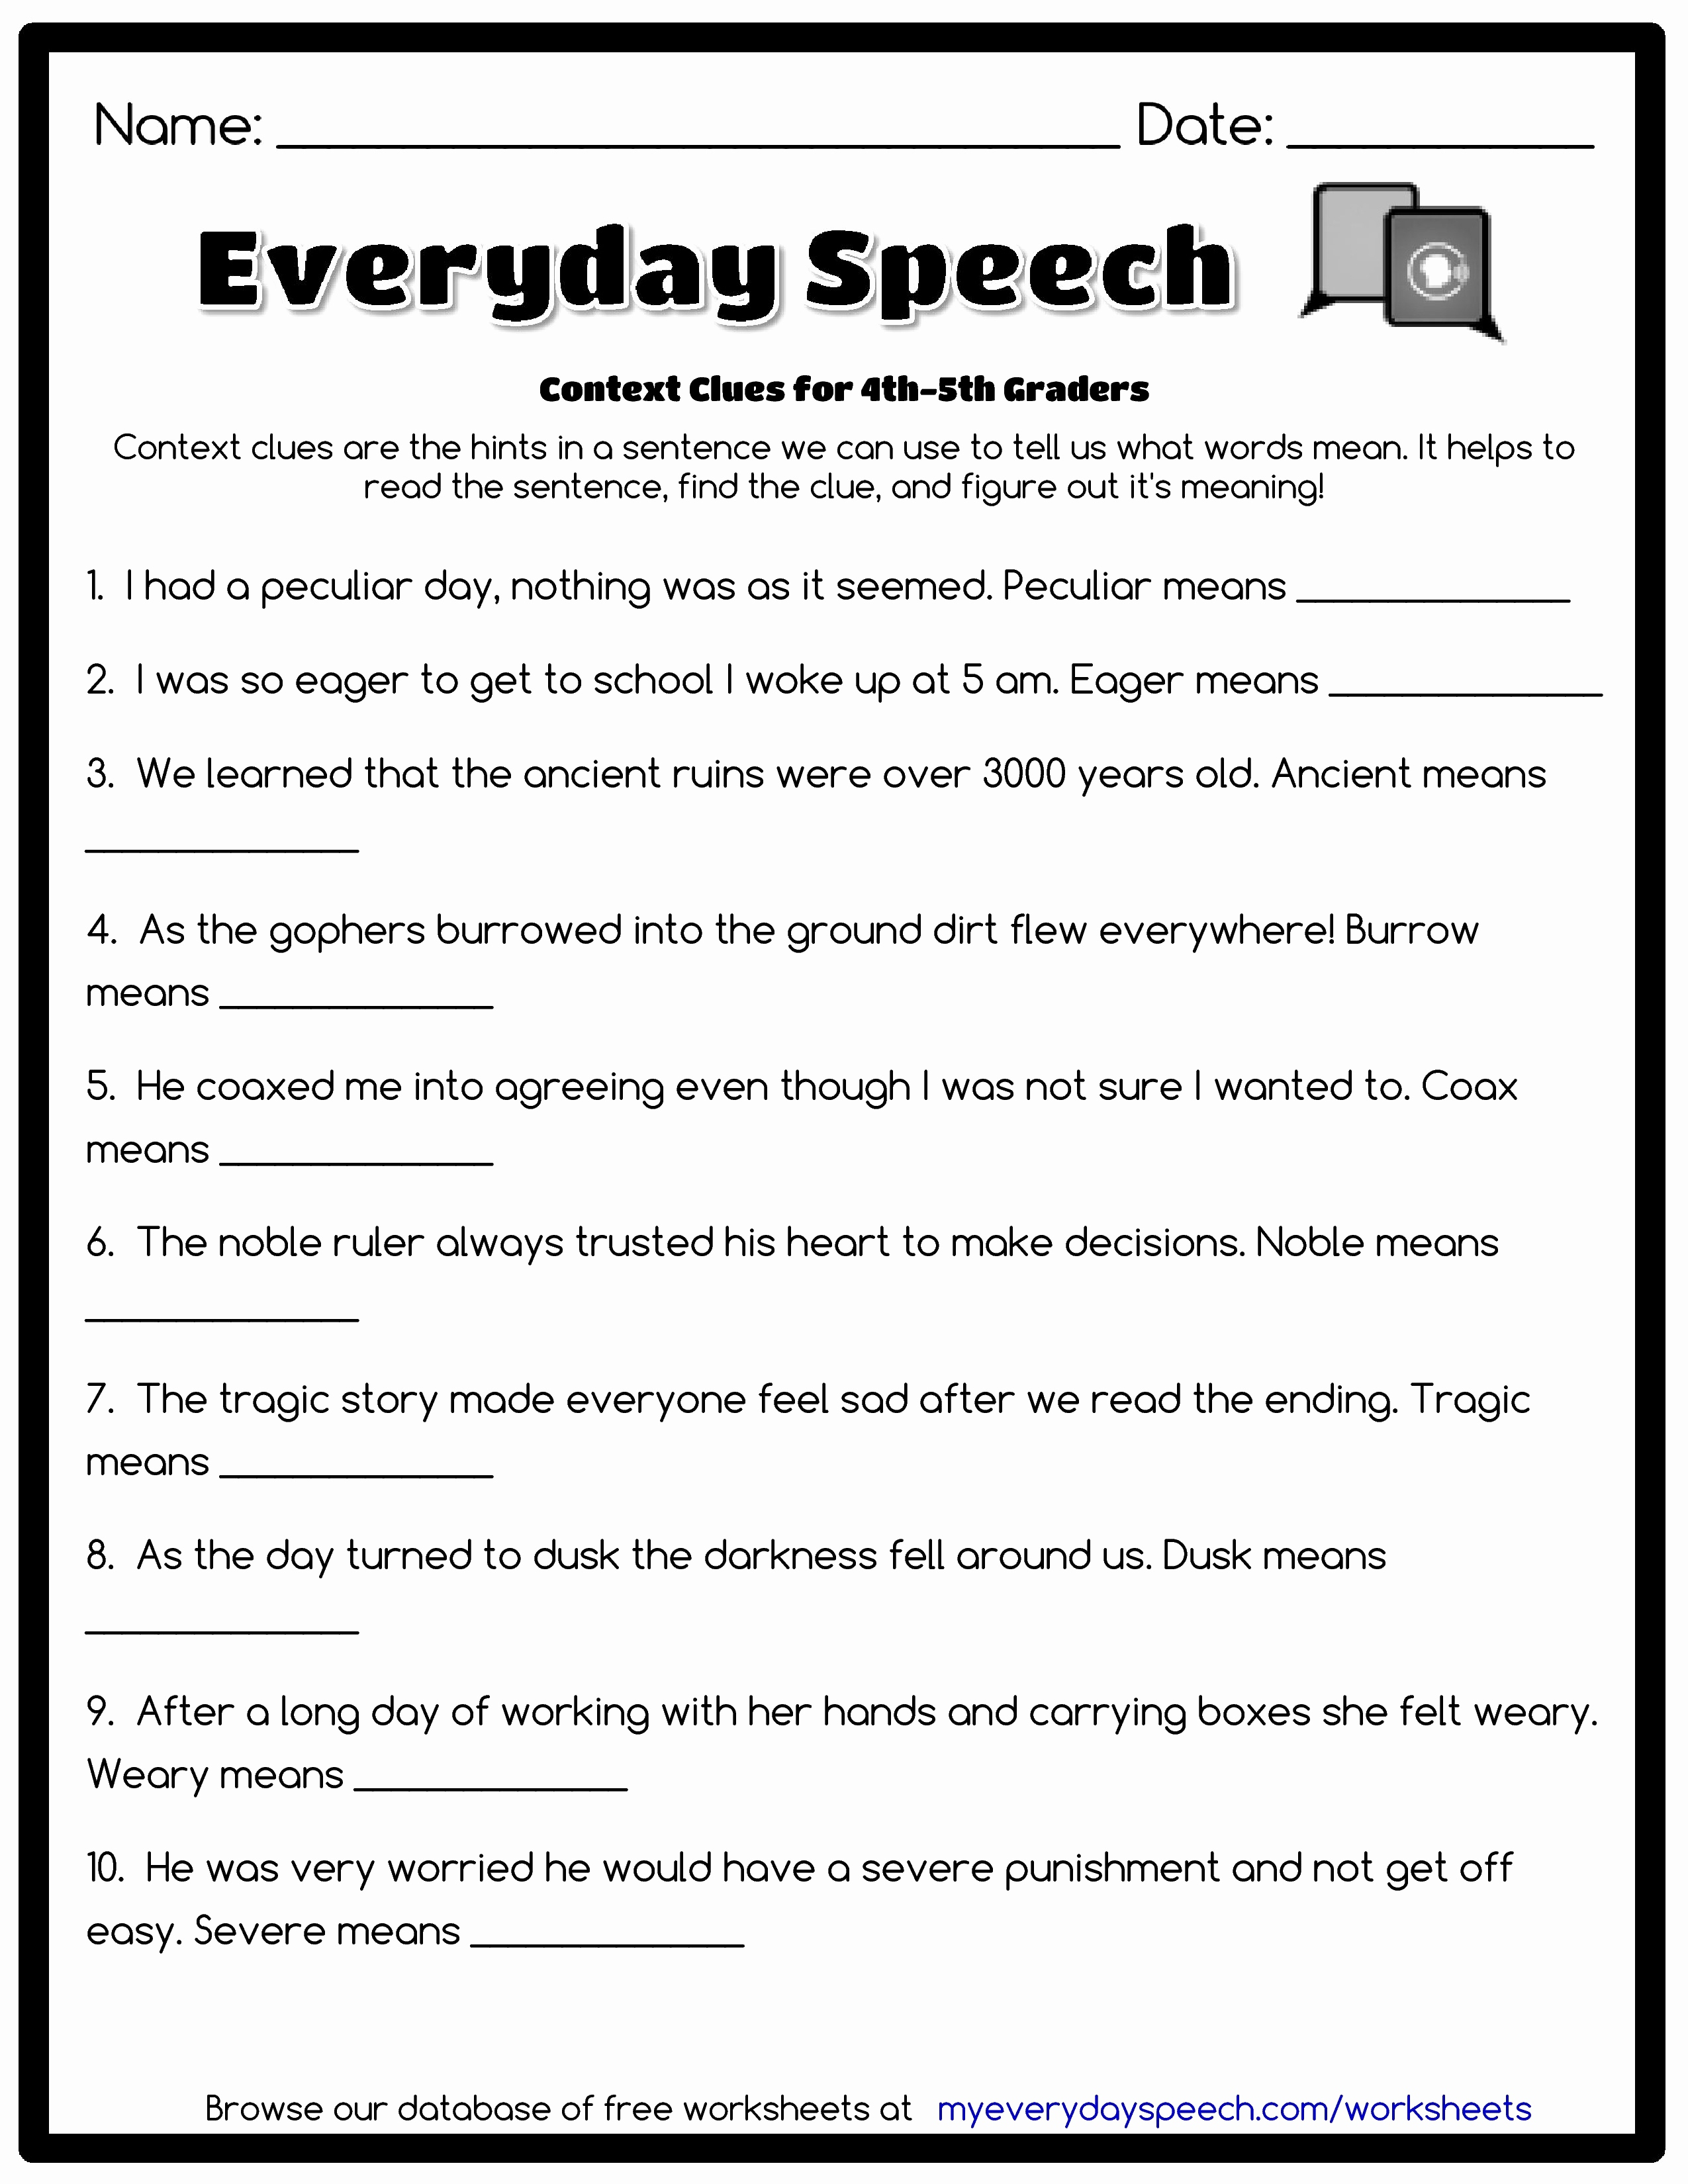 Grammar Worksheets Third Grade To Education - Math Worksheet For | Printable Grammar Worksheets